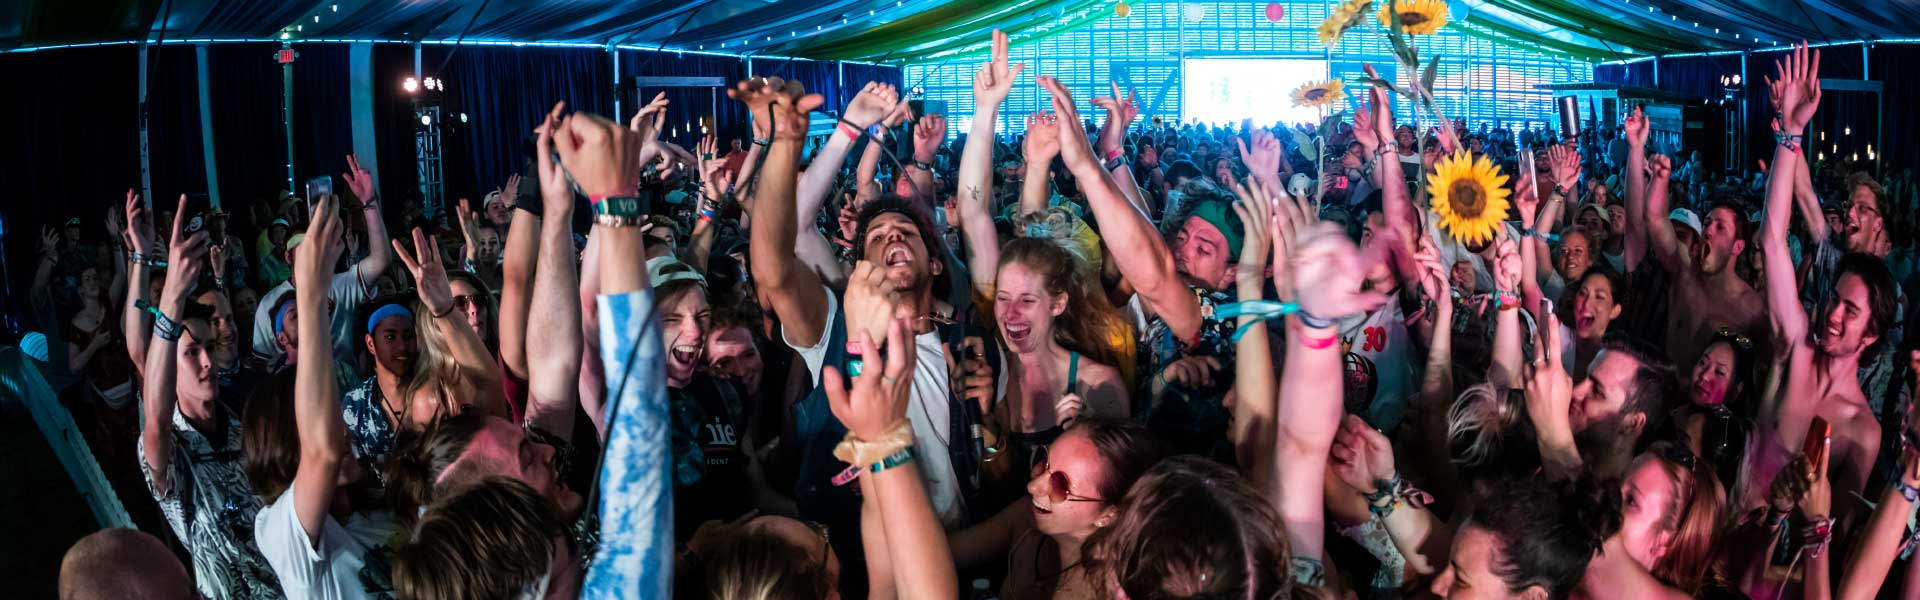 Festival goers hands in the air